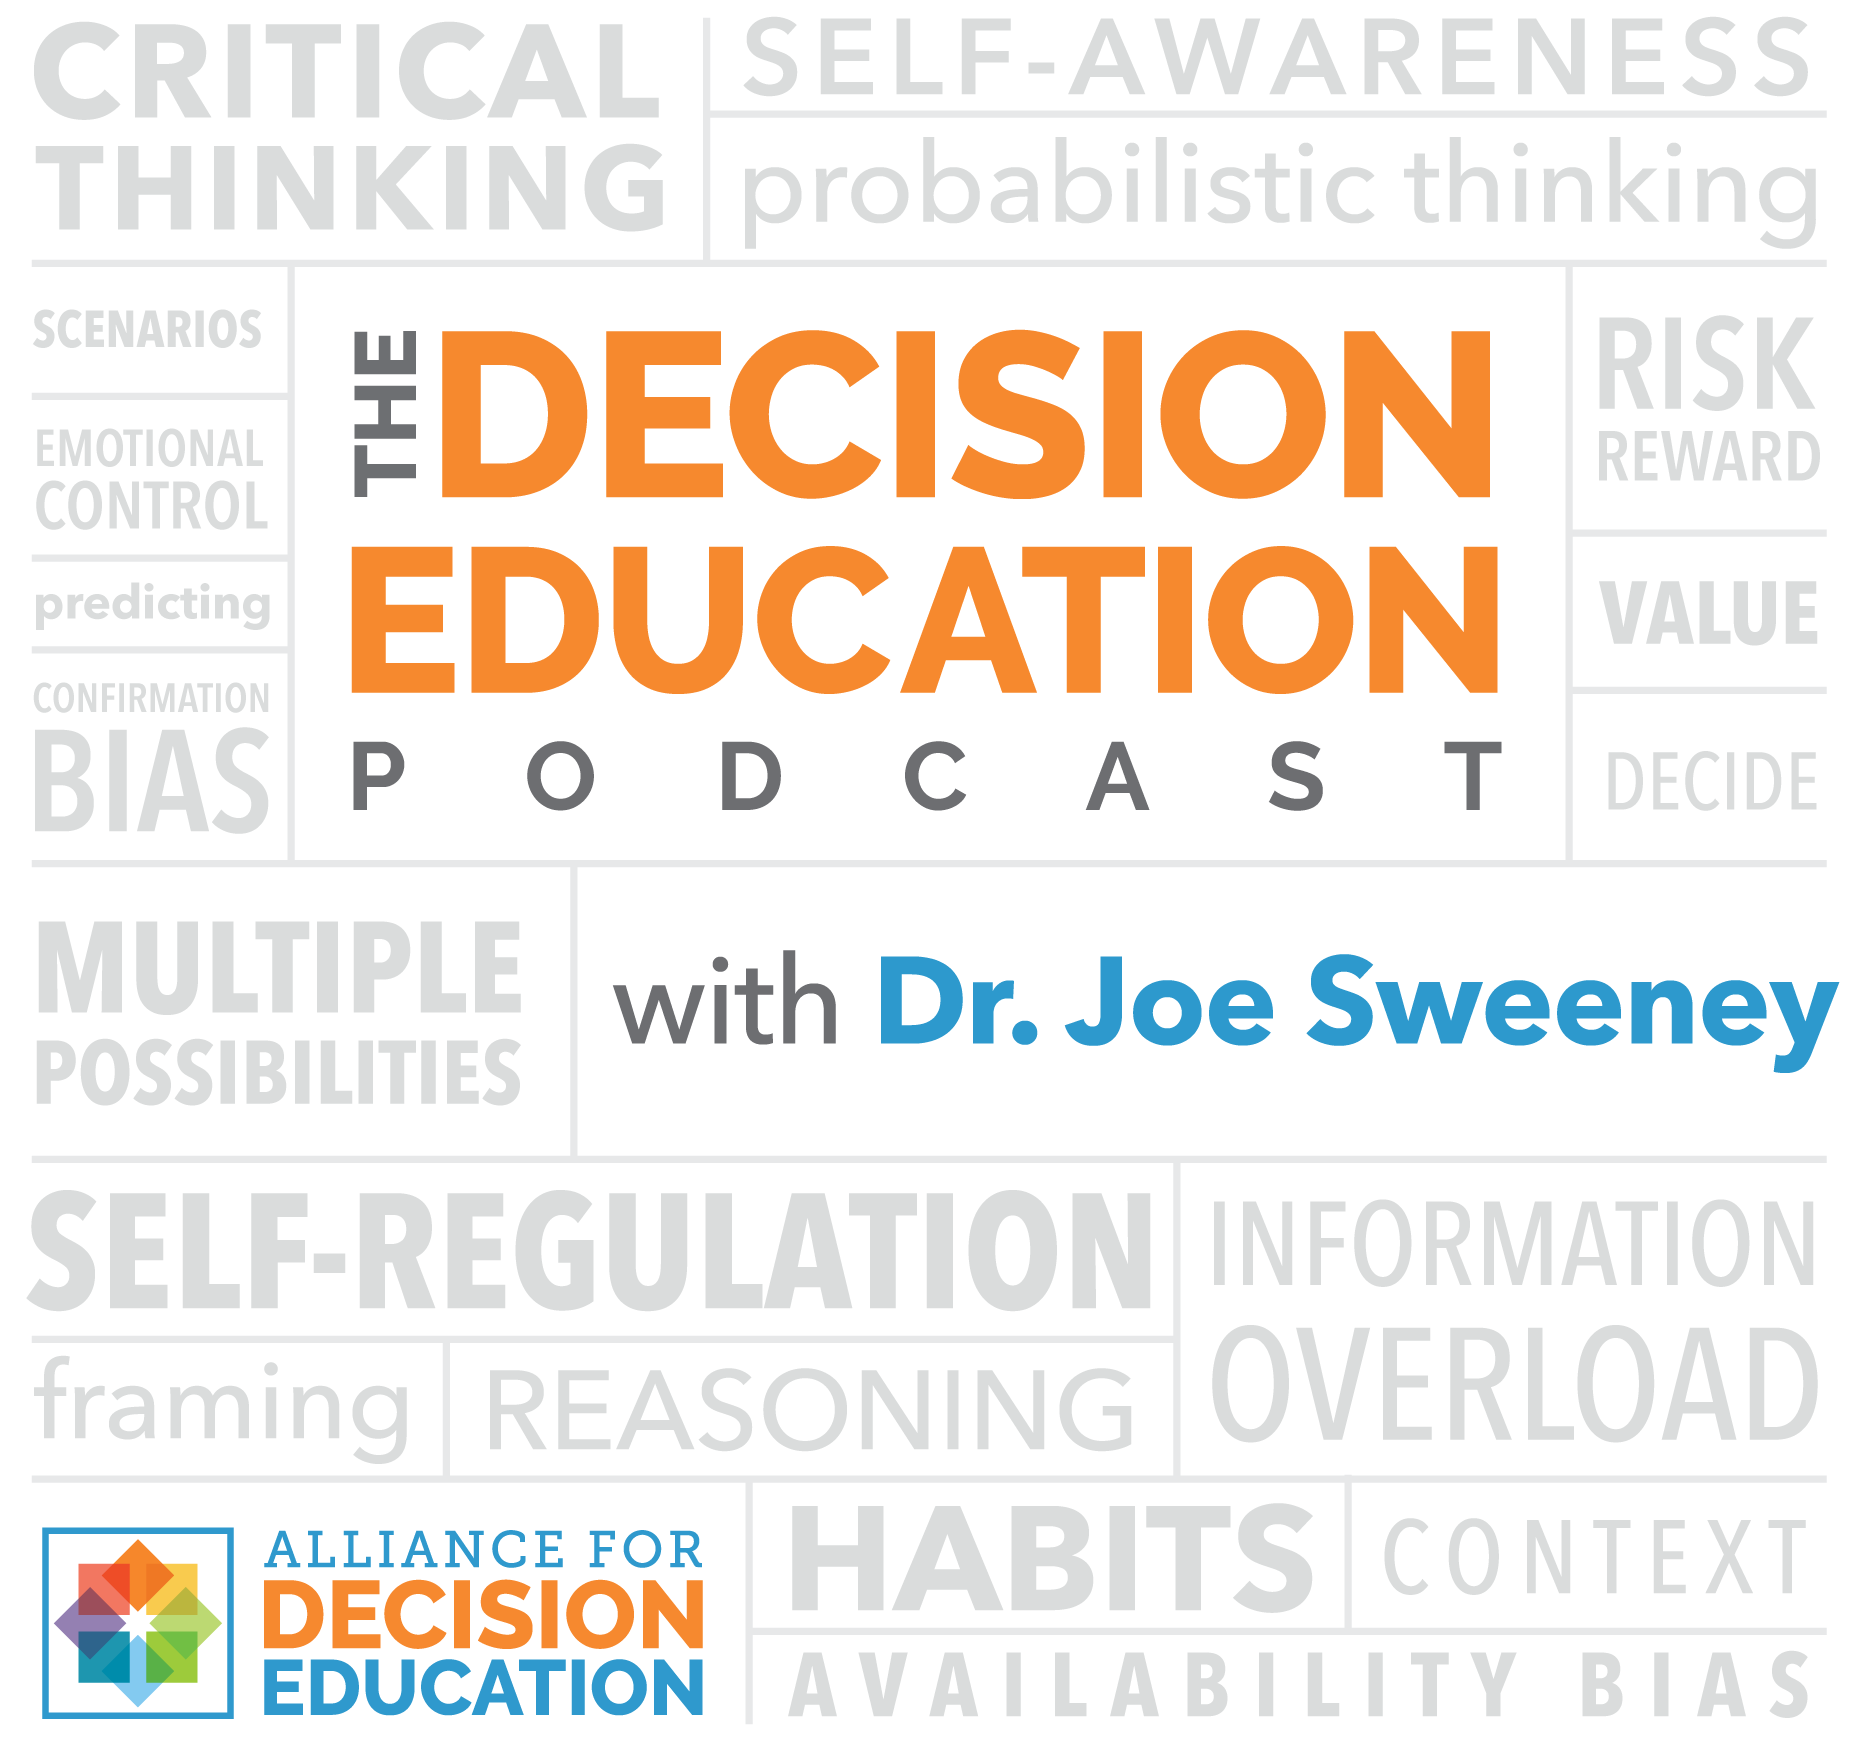 The Decision Education Podcast with Dr. Joe Sweeney